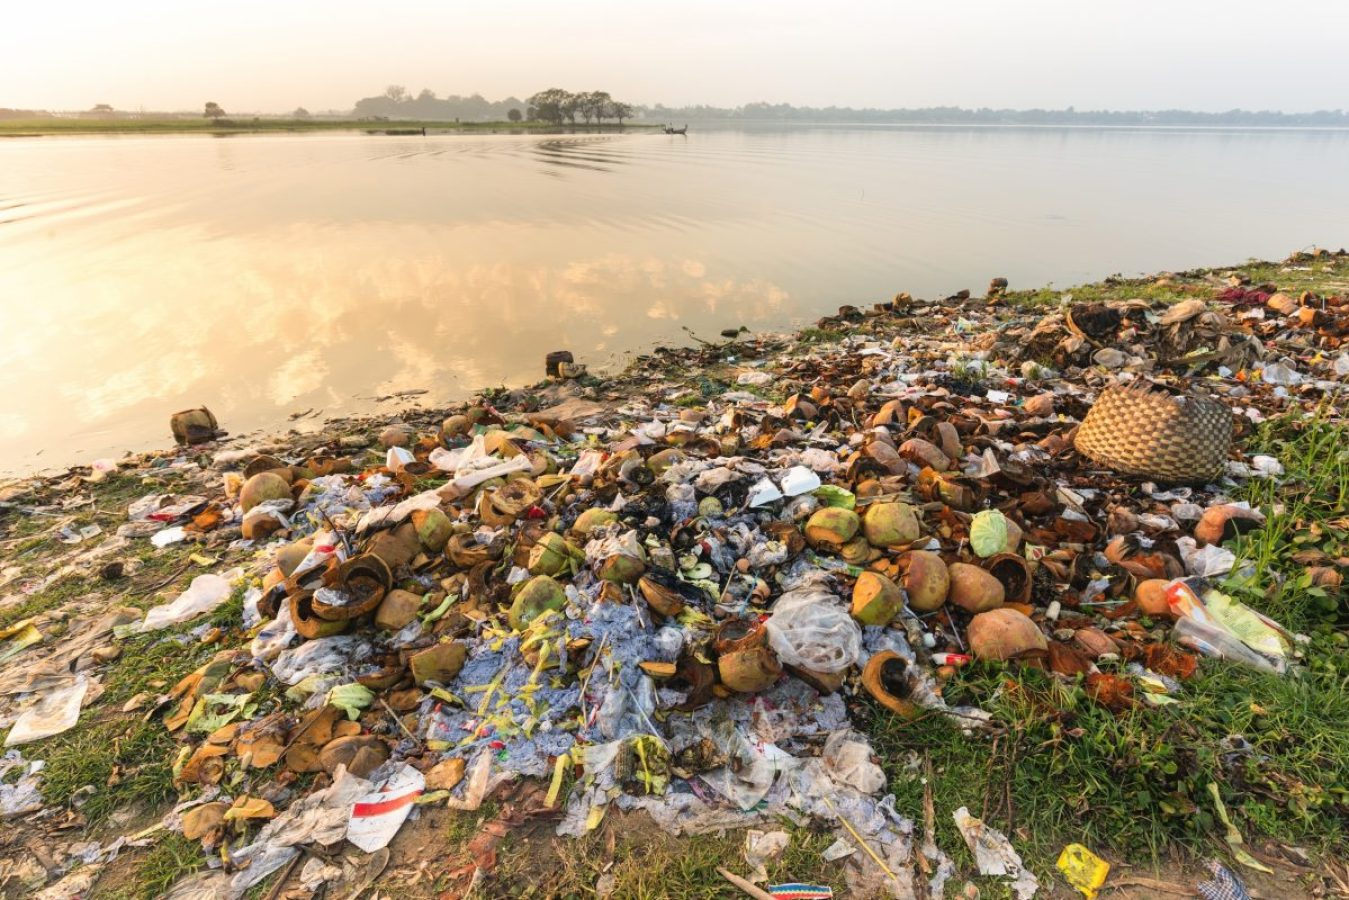 Rubbish pollution with food waste, plastic and other packaging stuffs on the bank of the Taungthaman lake near U Bein bridge in Myanmar (Burma)